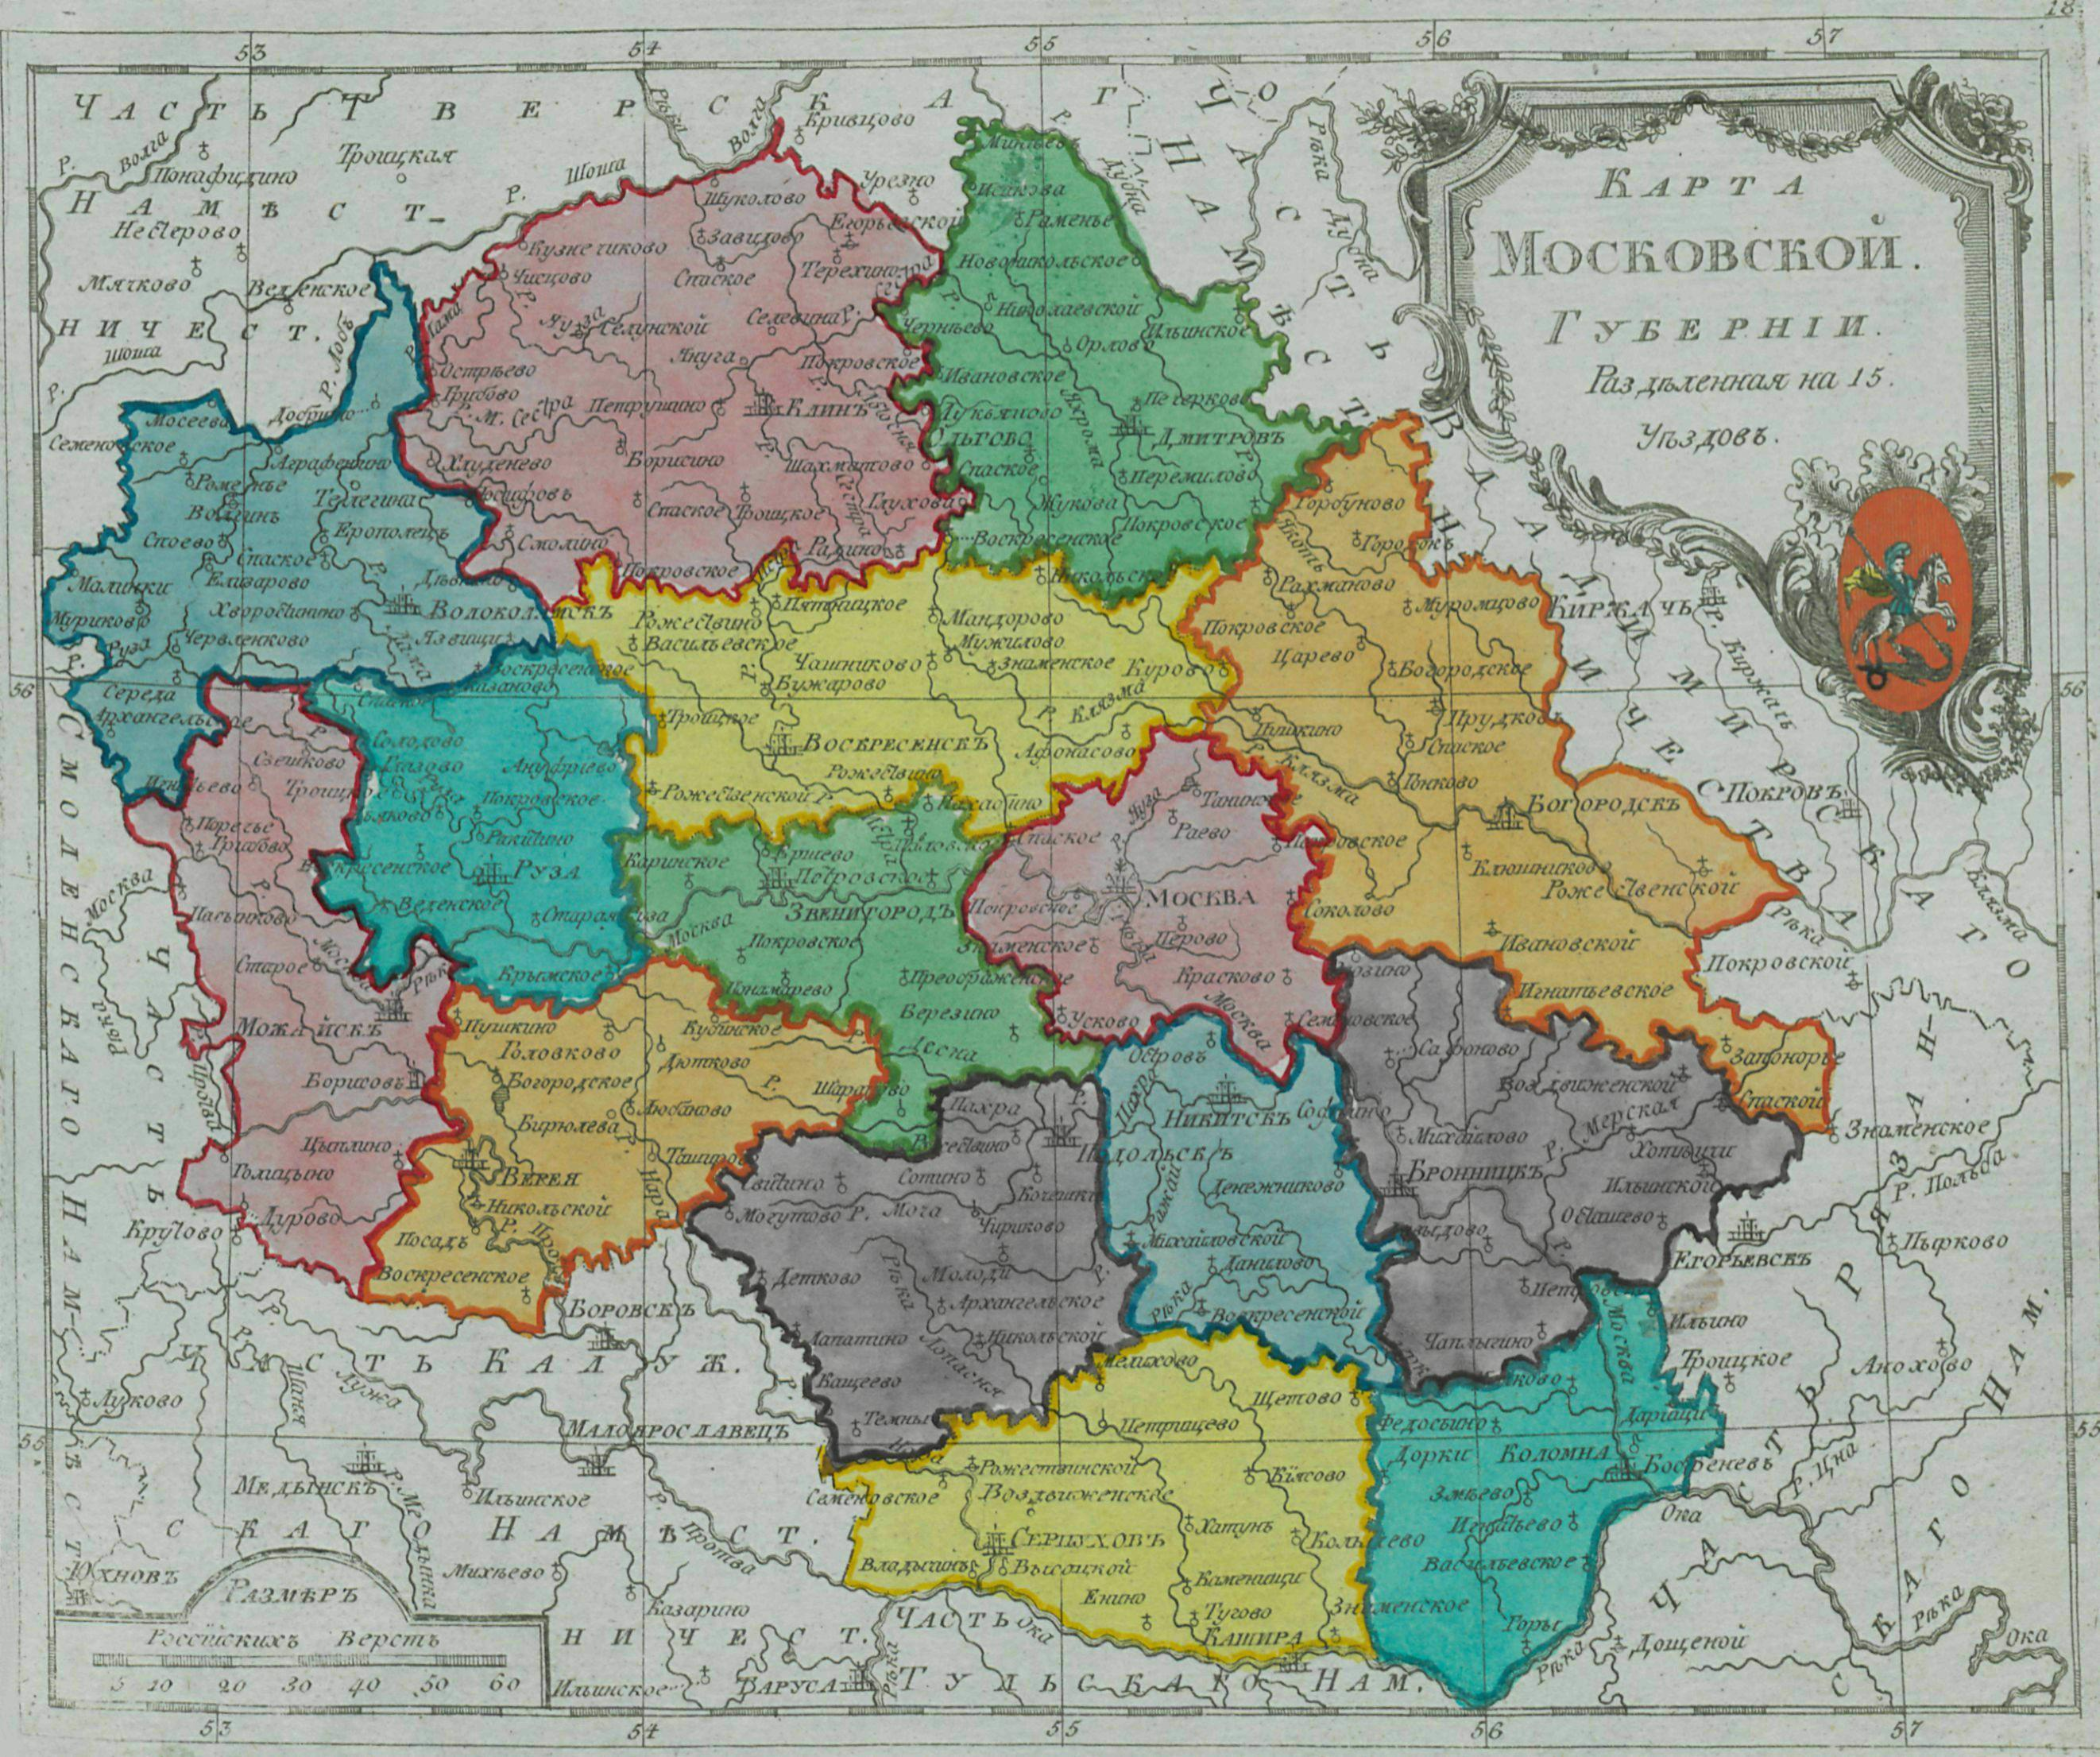 Datei:Map of Moscow Governorate 1792 (small atlas).jpg ...